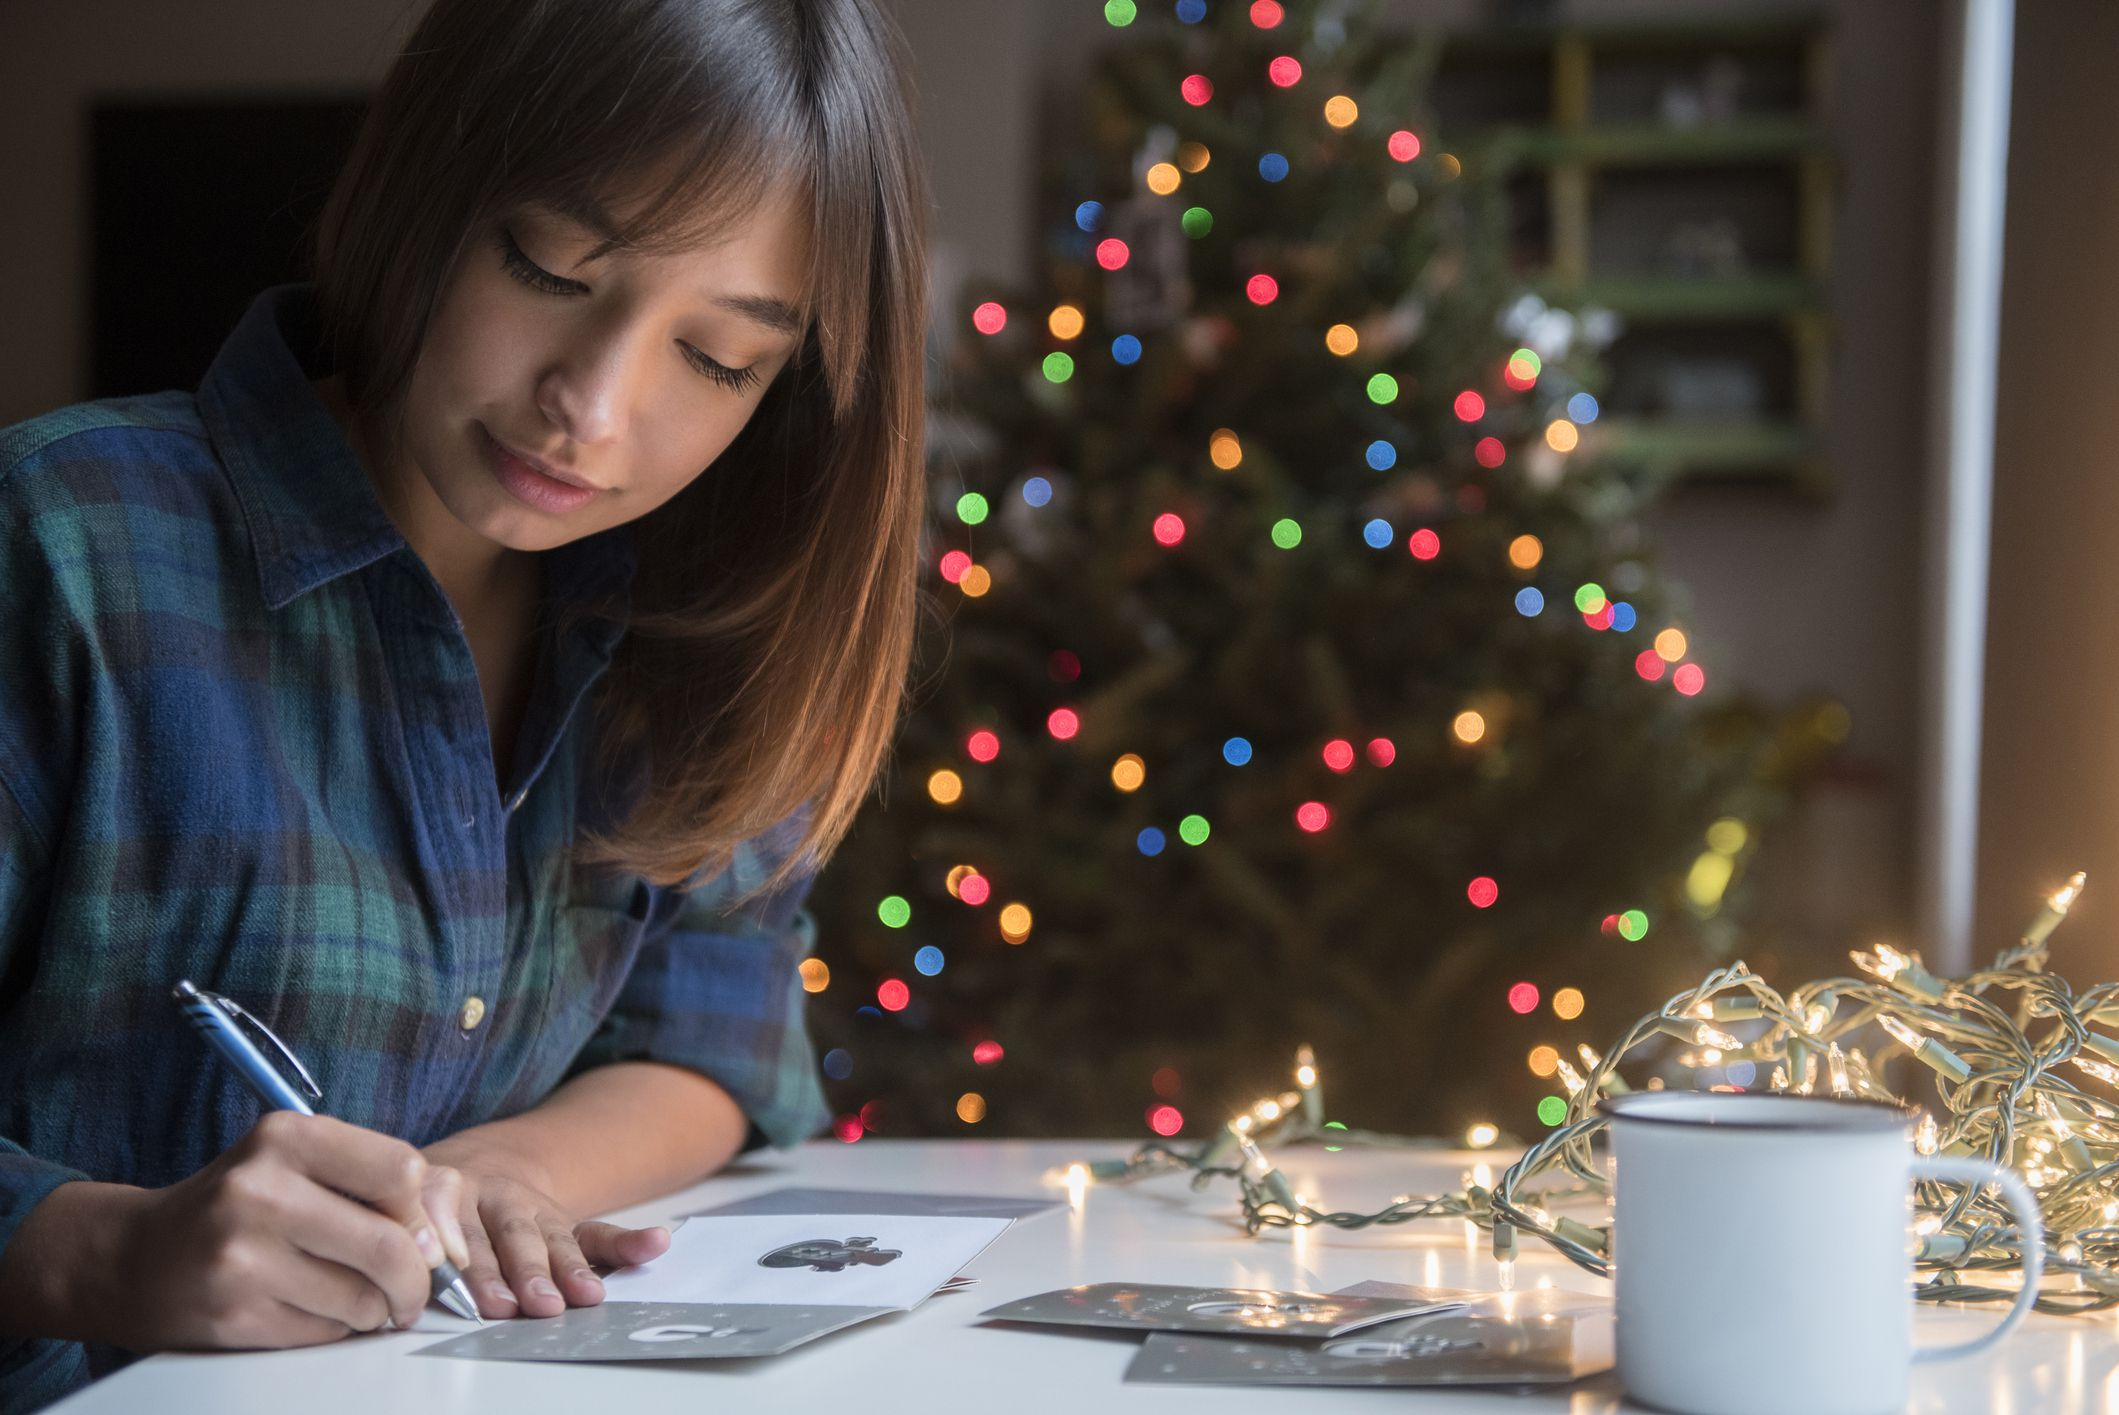 How to Choose, Address, and Sign Business Christmas Cards